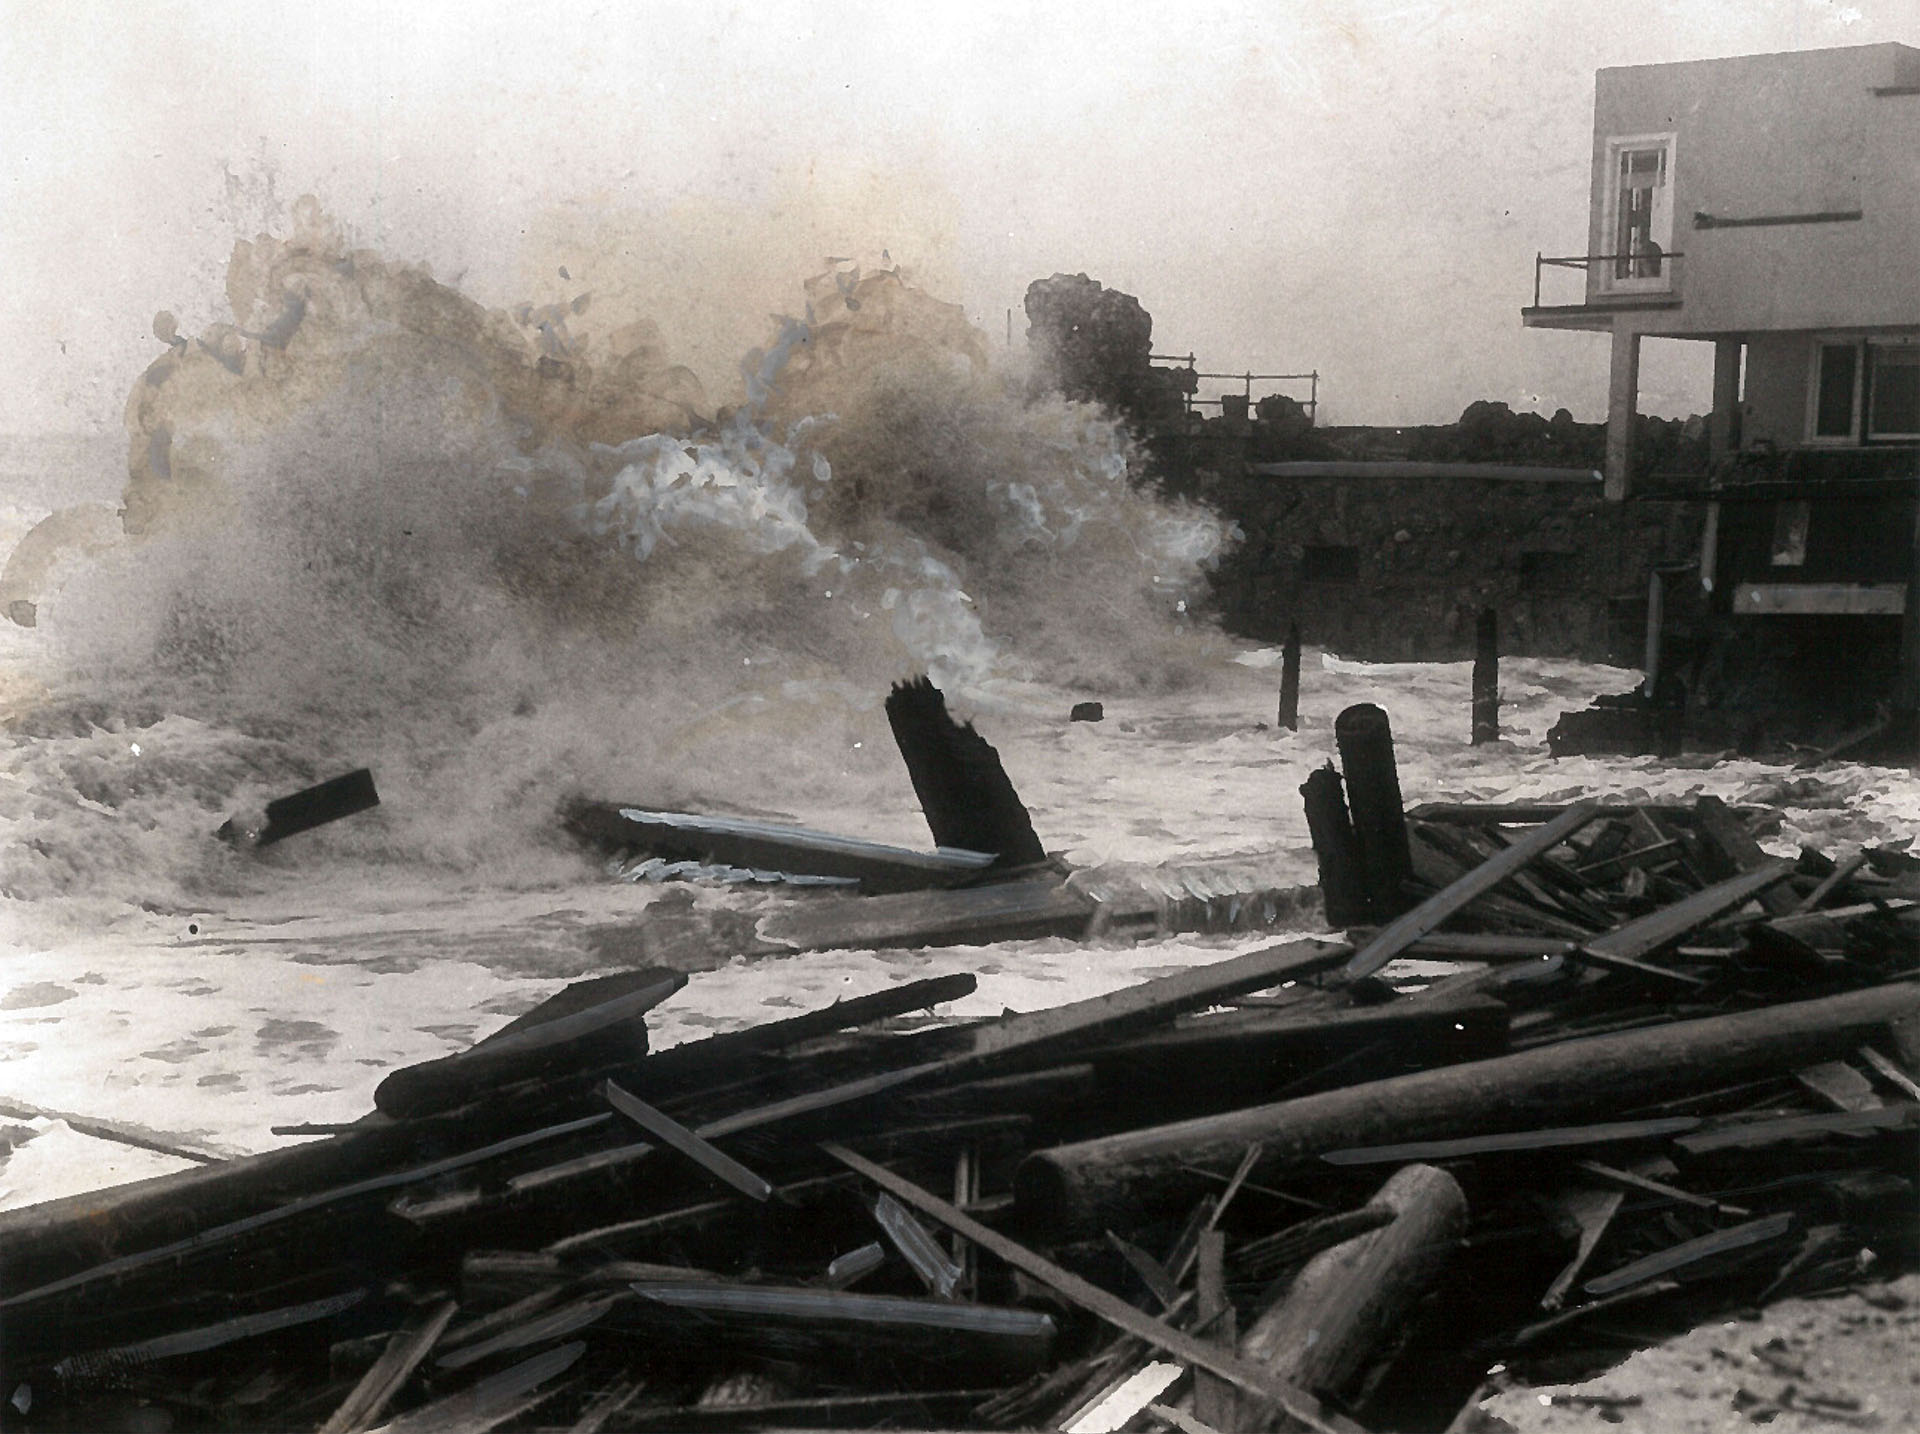 Waves pound the Long Beach shore during the 1939 tropical storm. Photo courtesy of the USC Libraries – Los Angeles Examiner Collection.